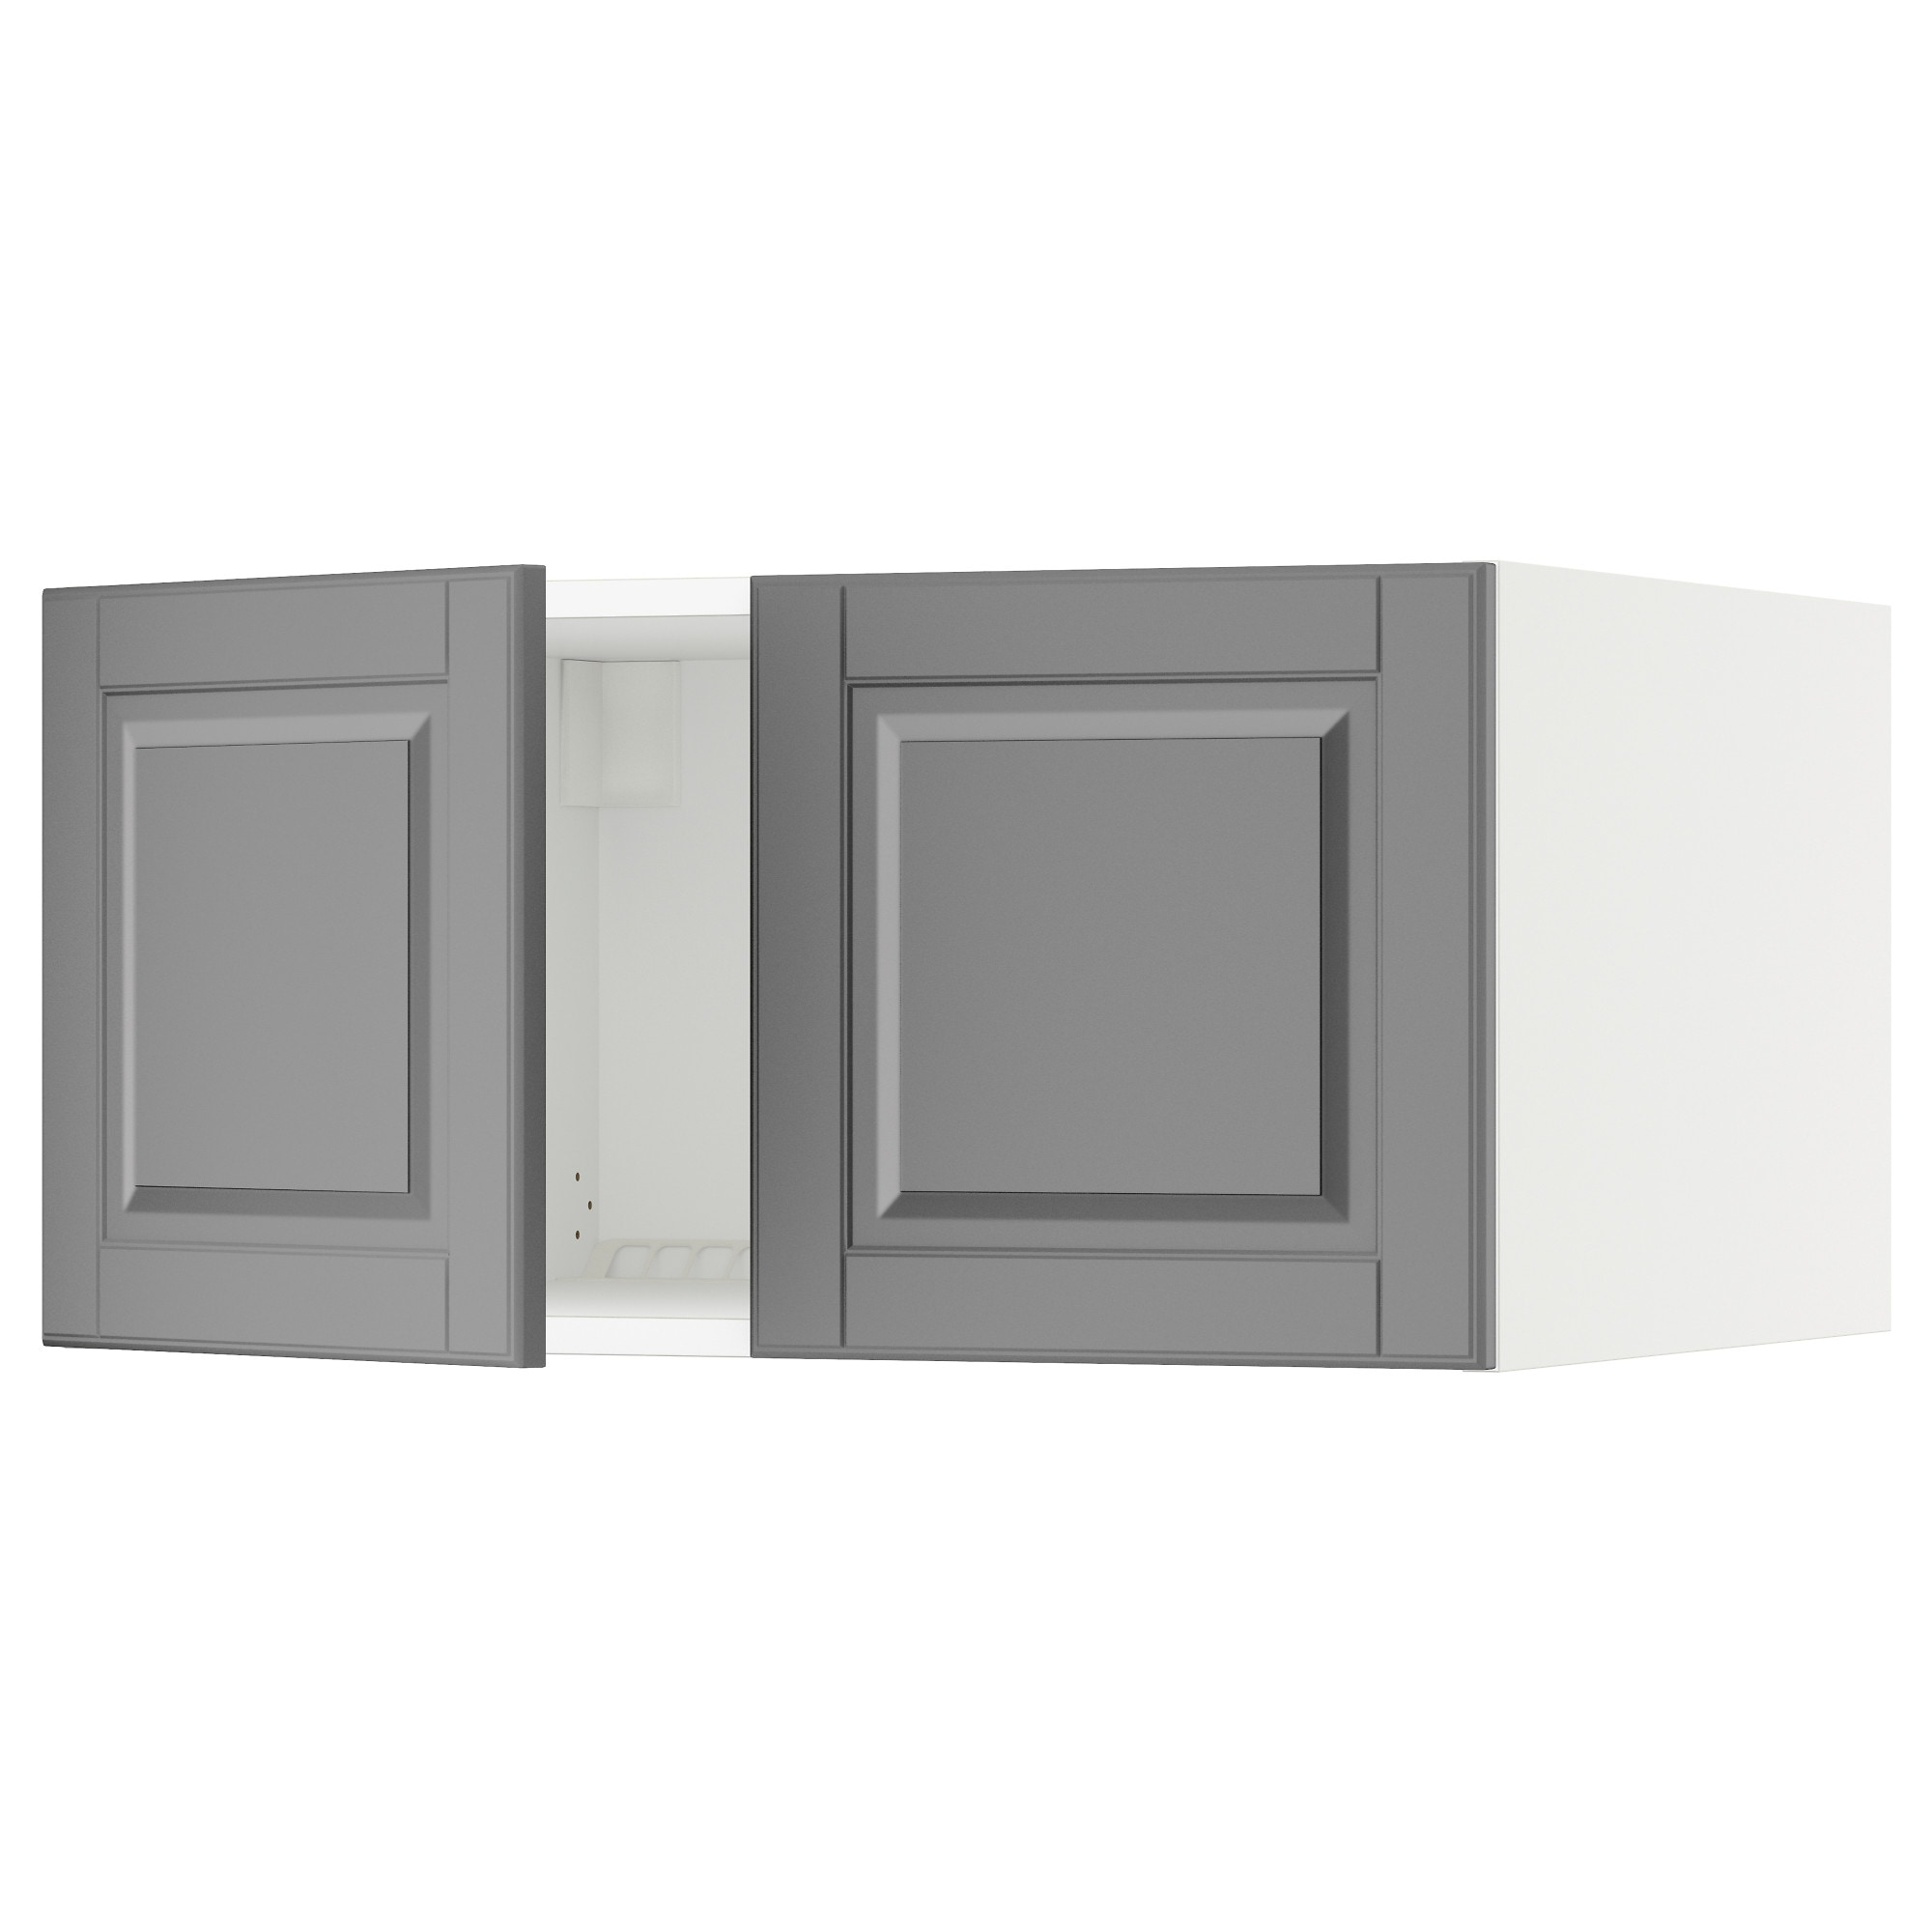 Height Of Top Cabinets Wall Cabinets Sektion System Ikea